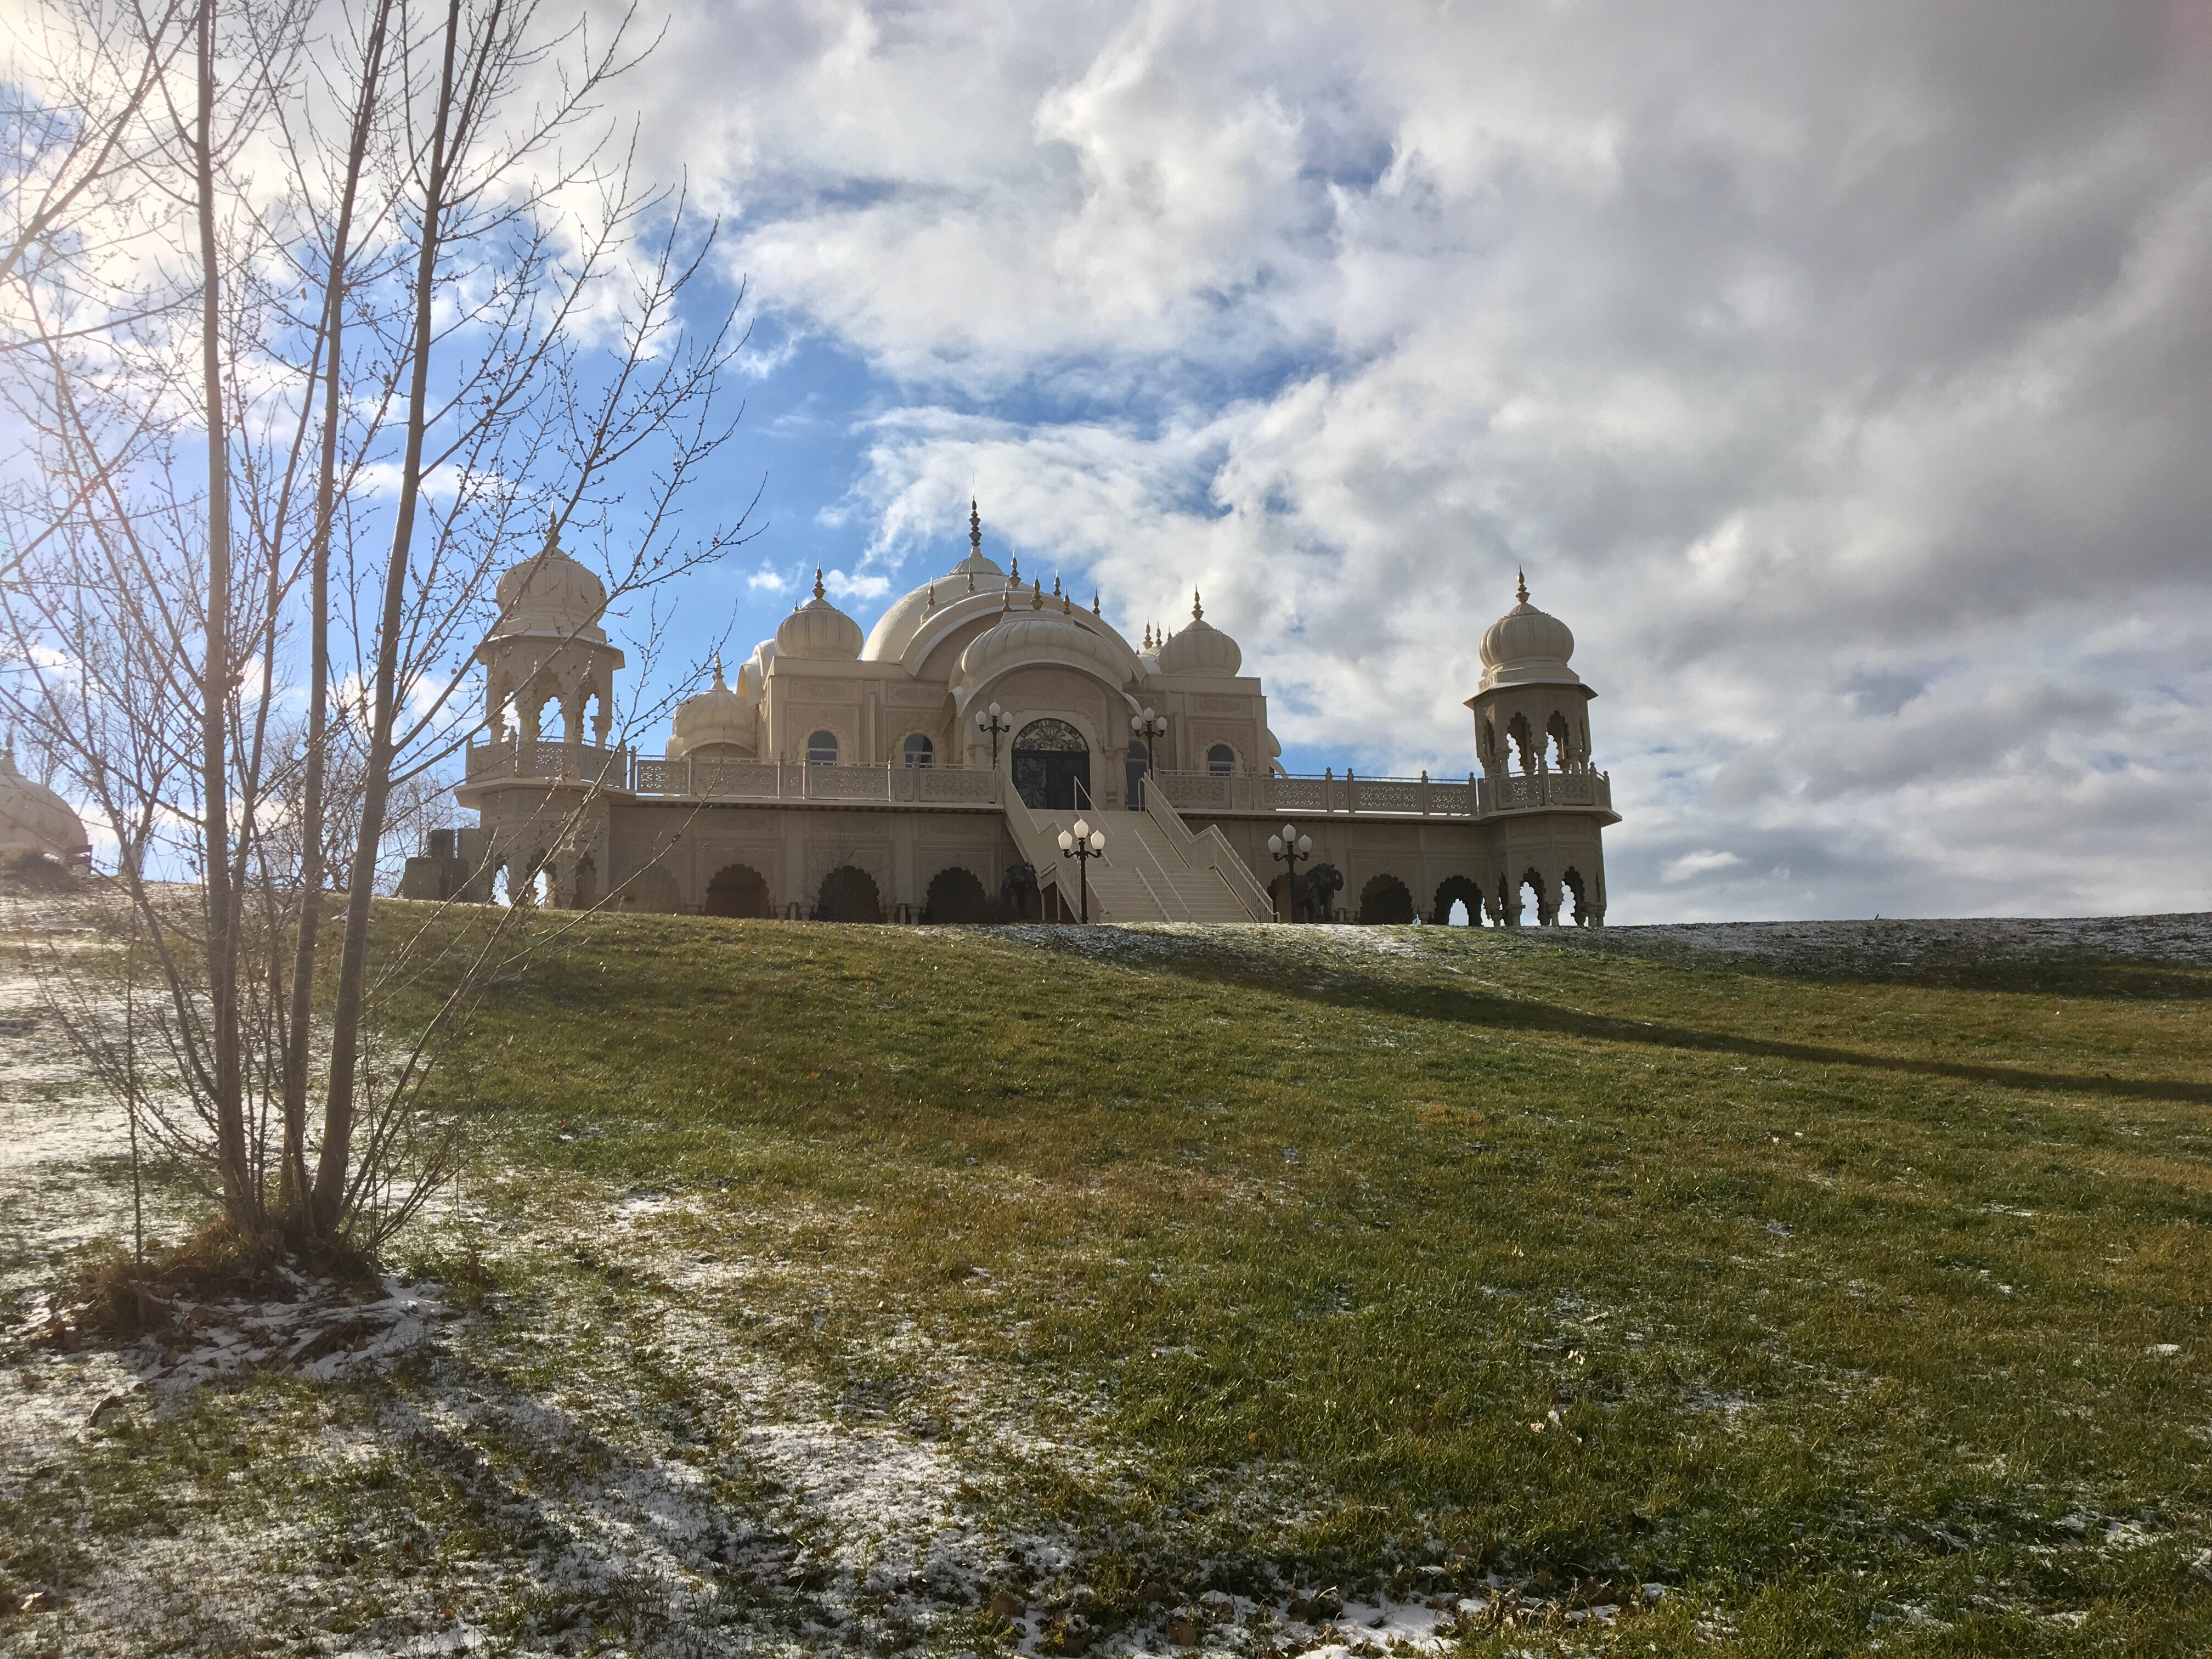 Sri Sri Radha Krishna Temple in Spanish Fork